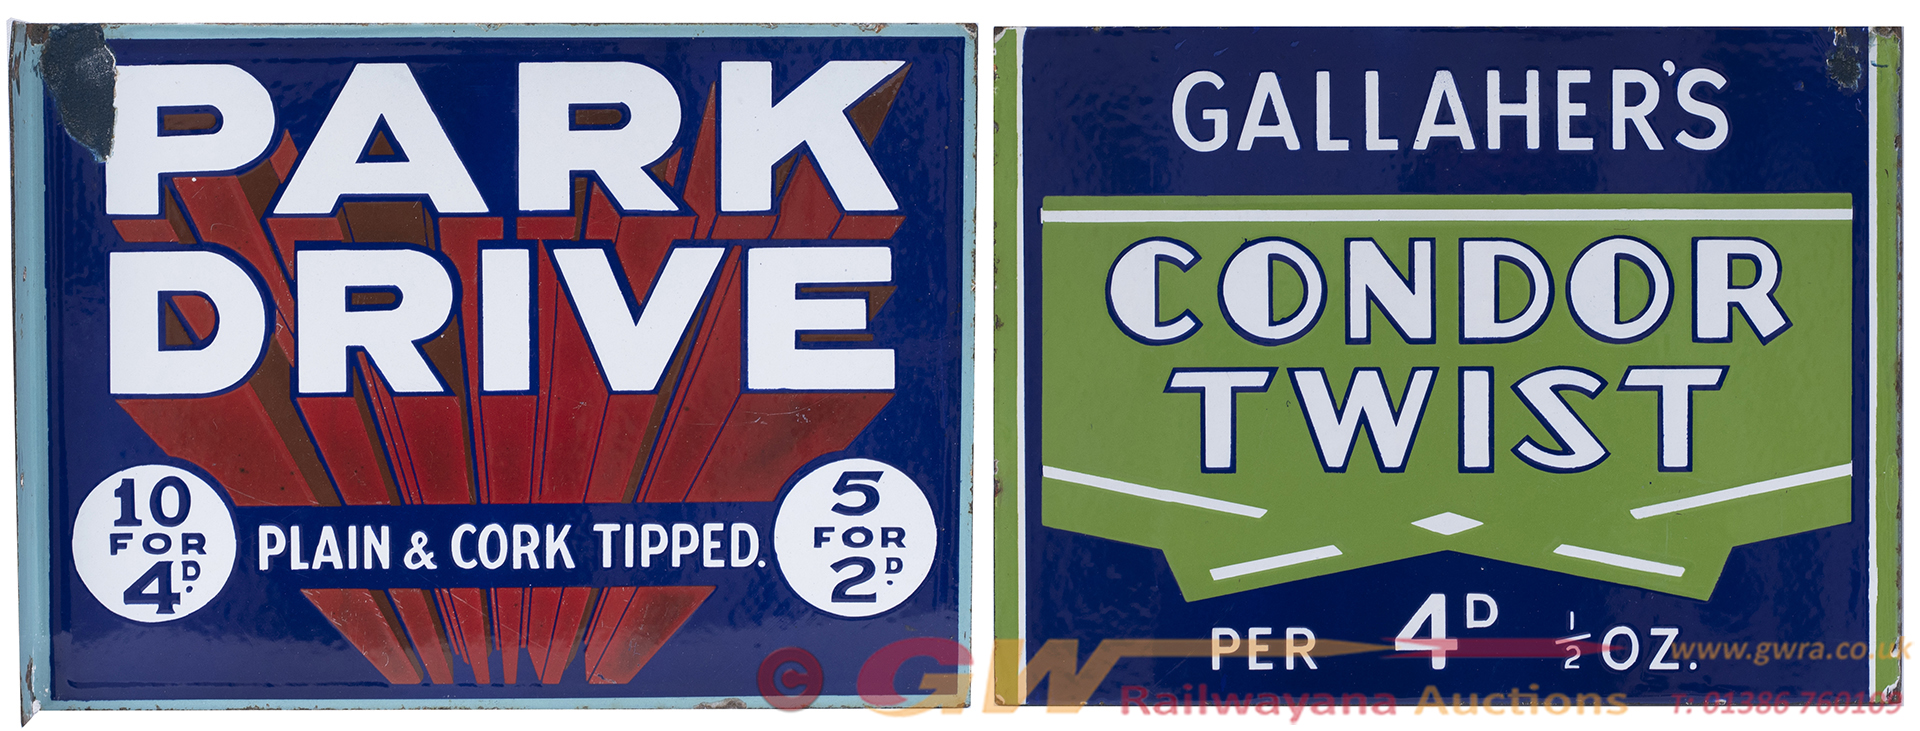 Advertising Enamel Double Sided Sign PARK DRIVE 10